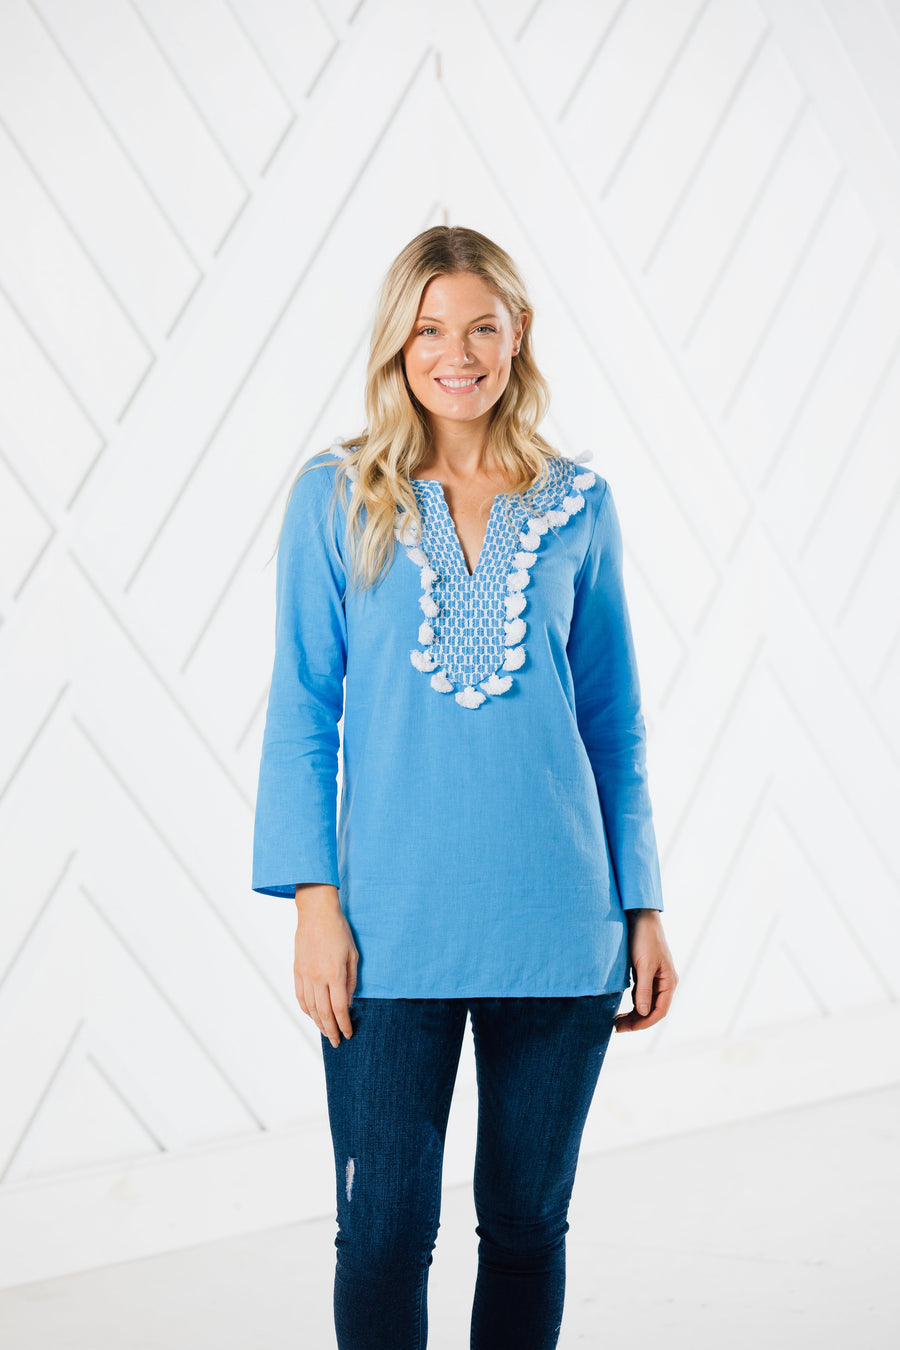 Tassel Tunic Top (two colors)